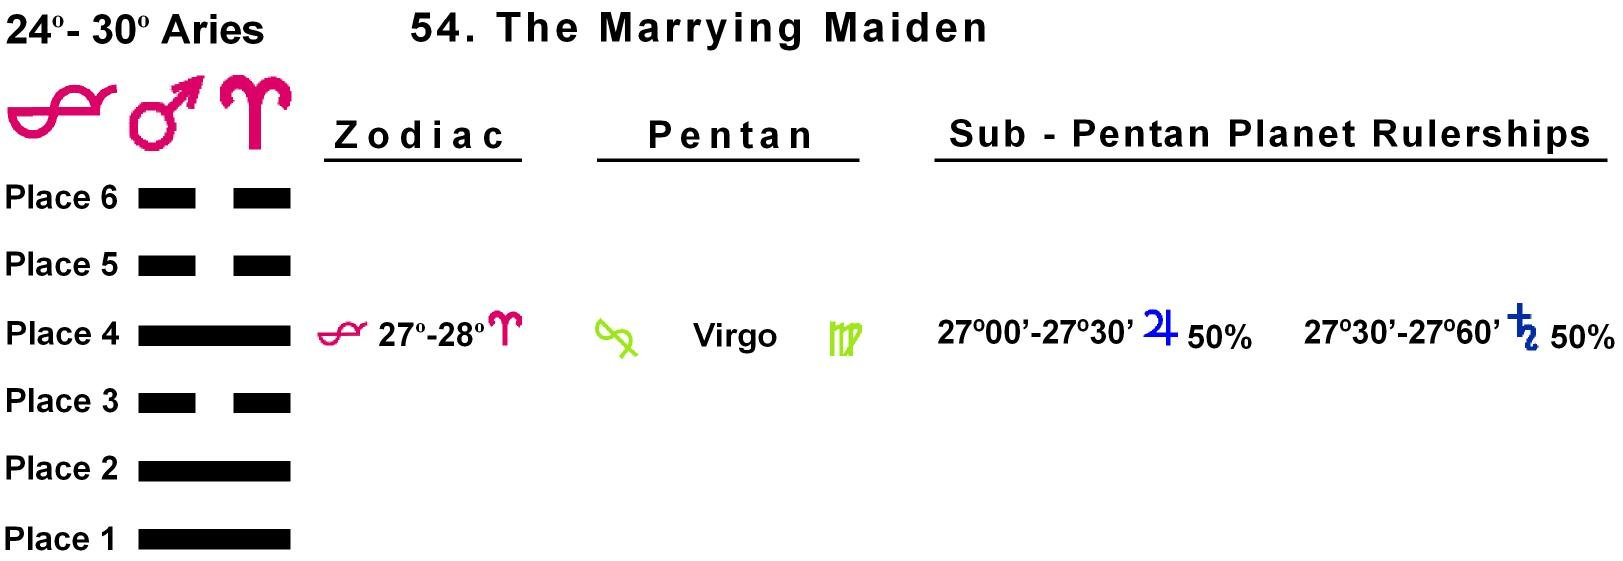 Pent-lines-01AR 27-28 Hx-54 Marrying Maiden